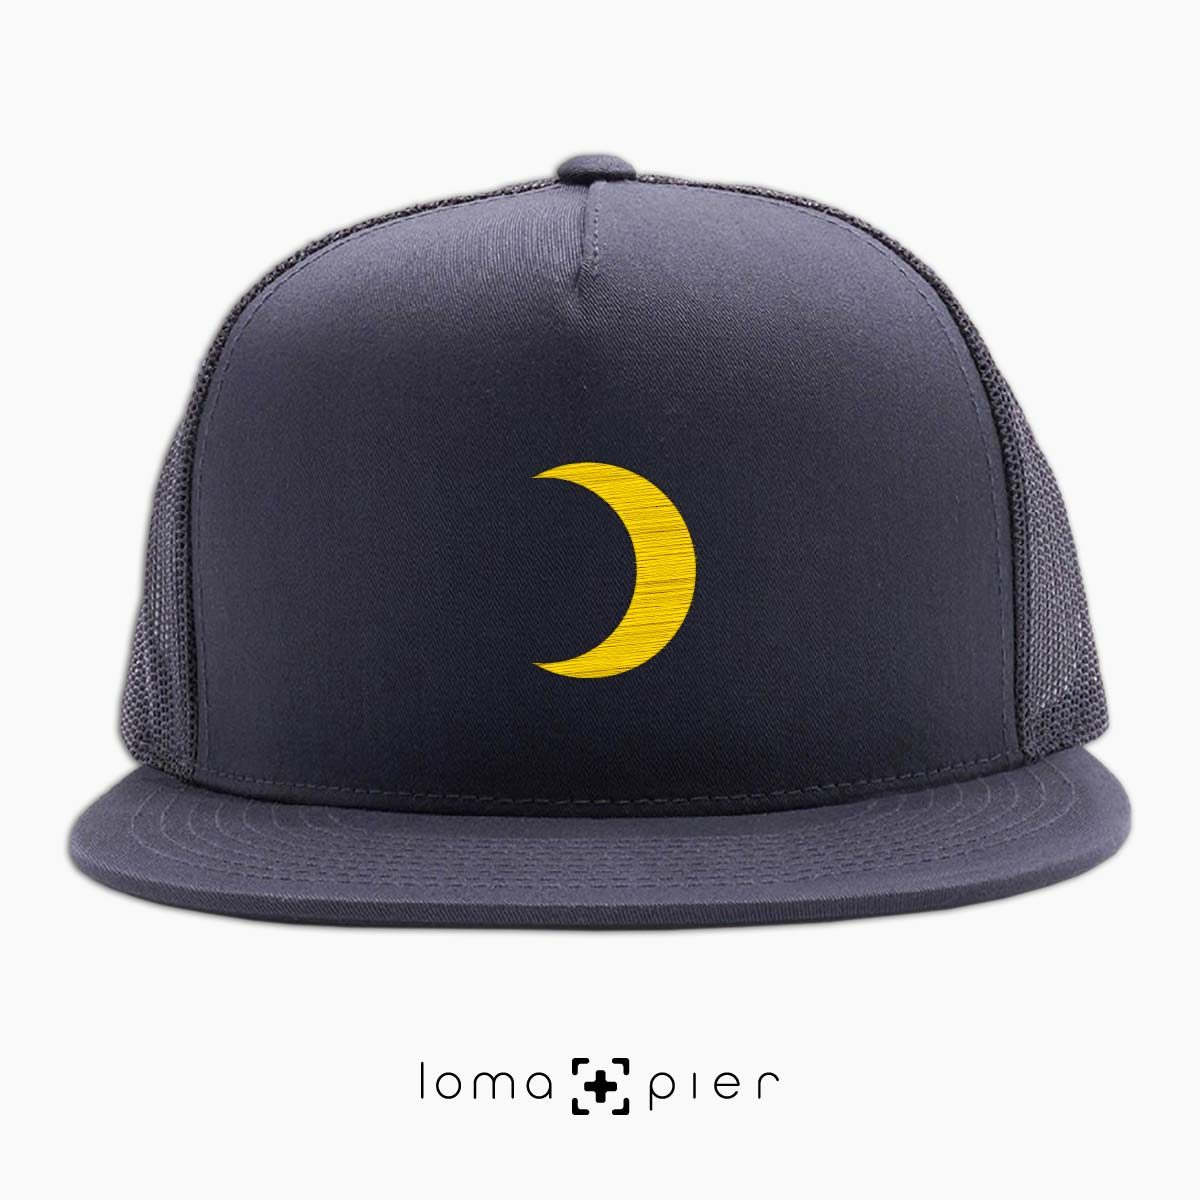 MOON icon beach netback trucker hat in charcoal by loma+pier hat store